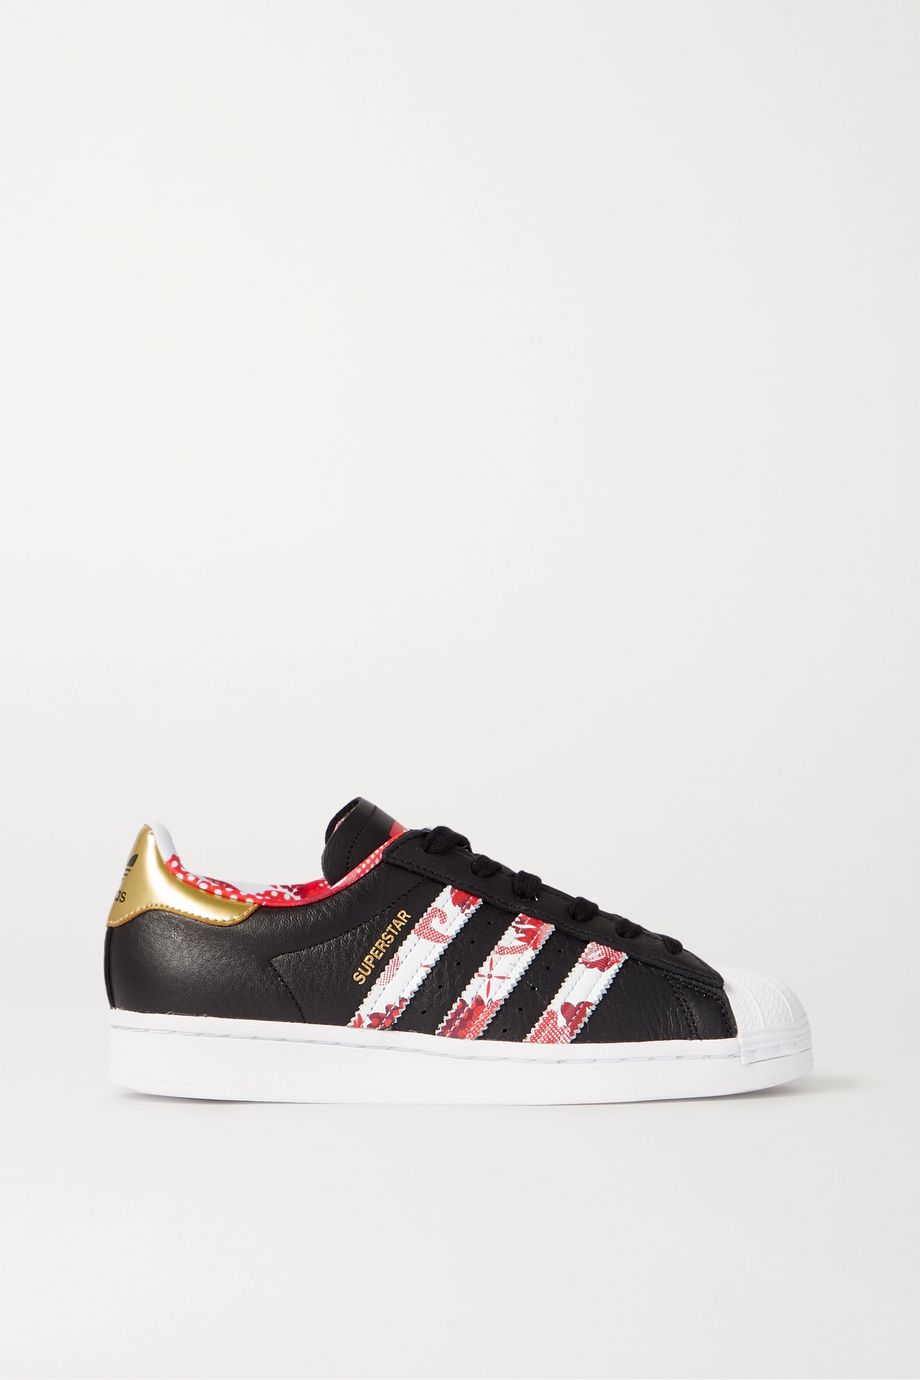 adidas Originals Superstar printed textured-leather sneakers